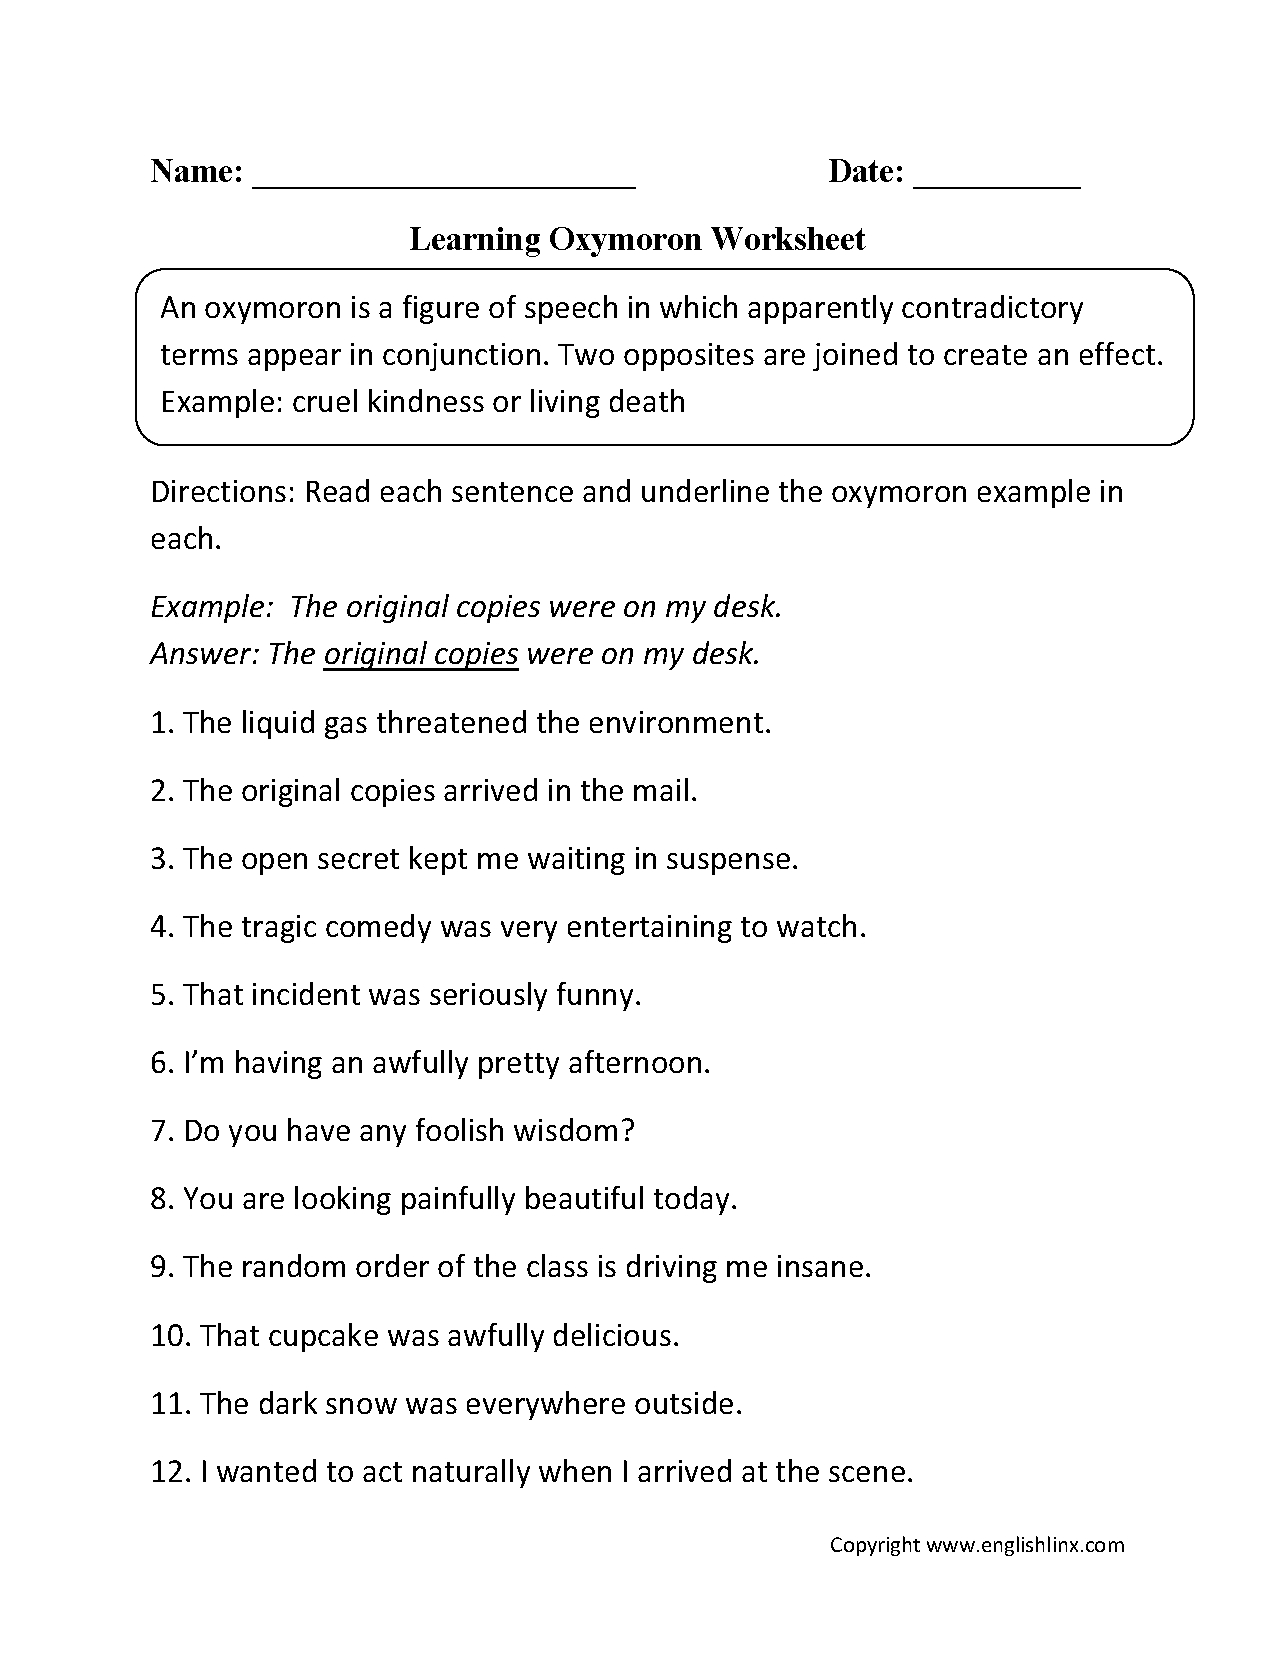 Figurative Language Worksheets by The Illustrated Classroom | TpT